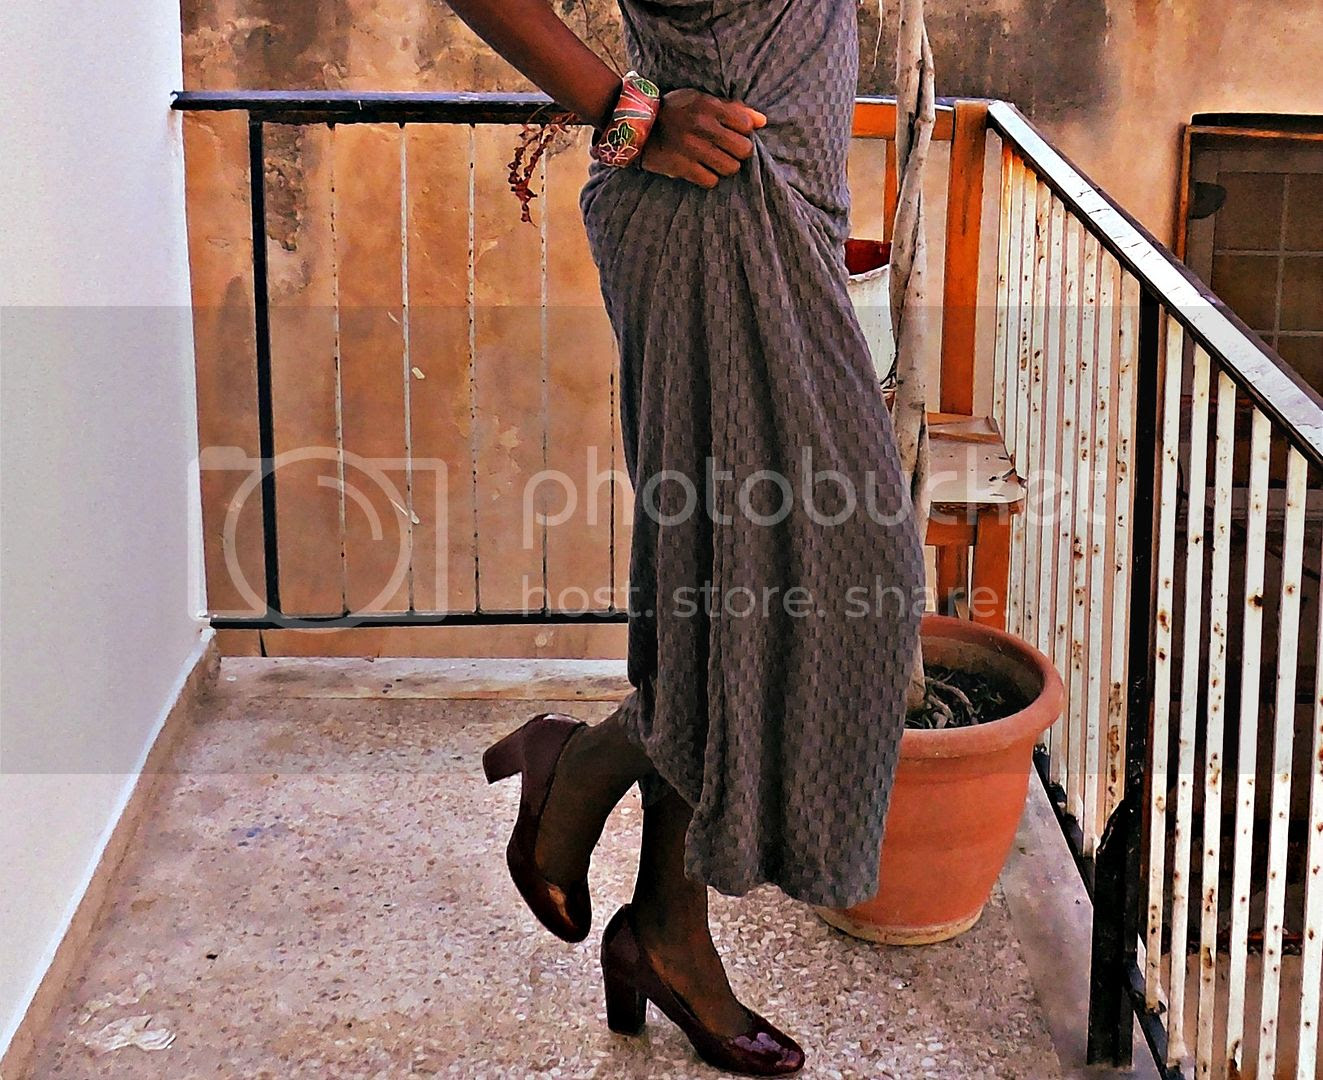 How to style a grey maxi dress details.jpg